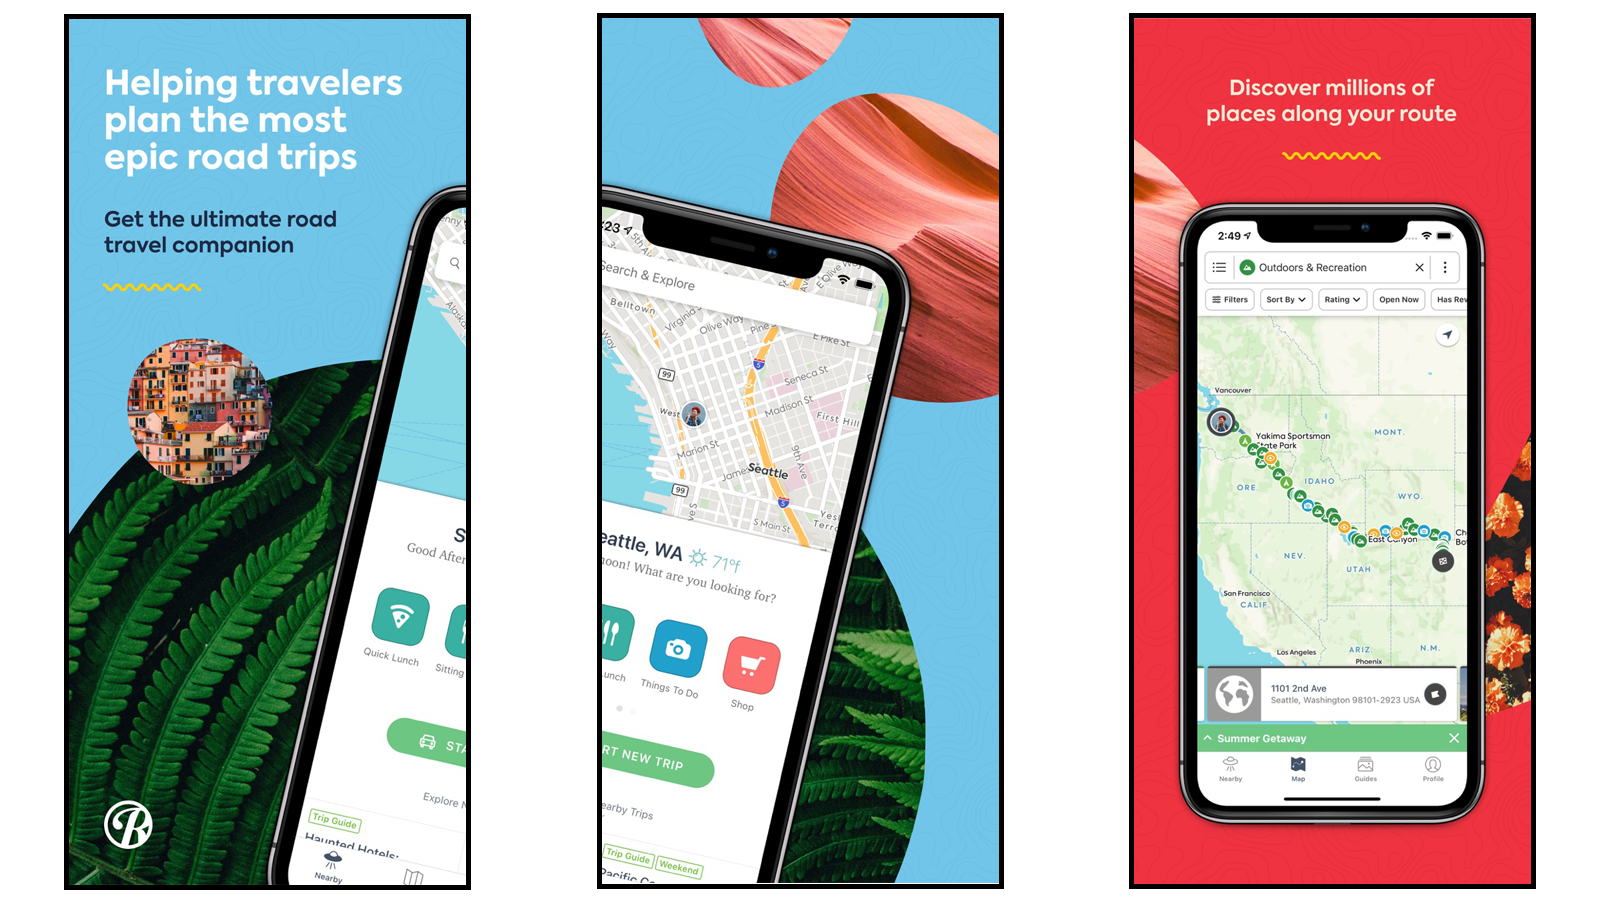 App pages showing road trip planning, waypoints, stop options, and maps